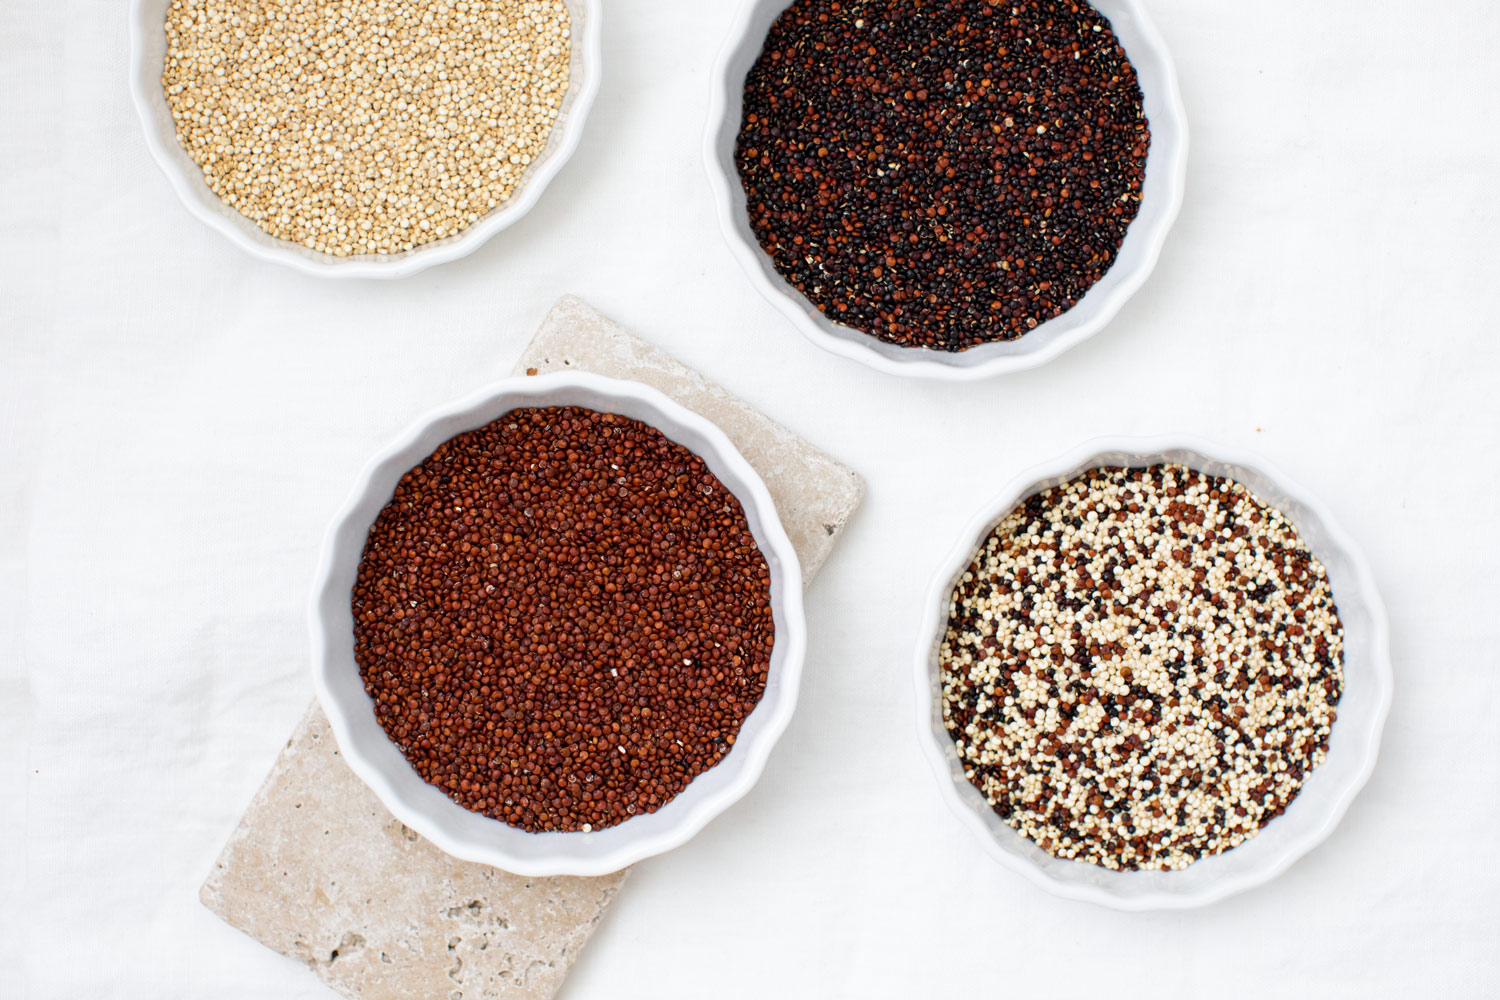 4 different types of quinoa: White, Black, red and mixed Quinoa